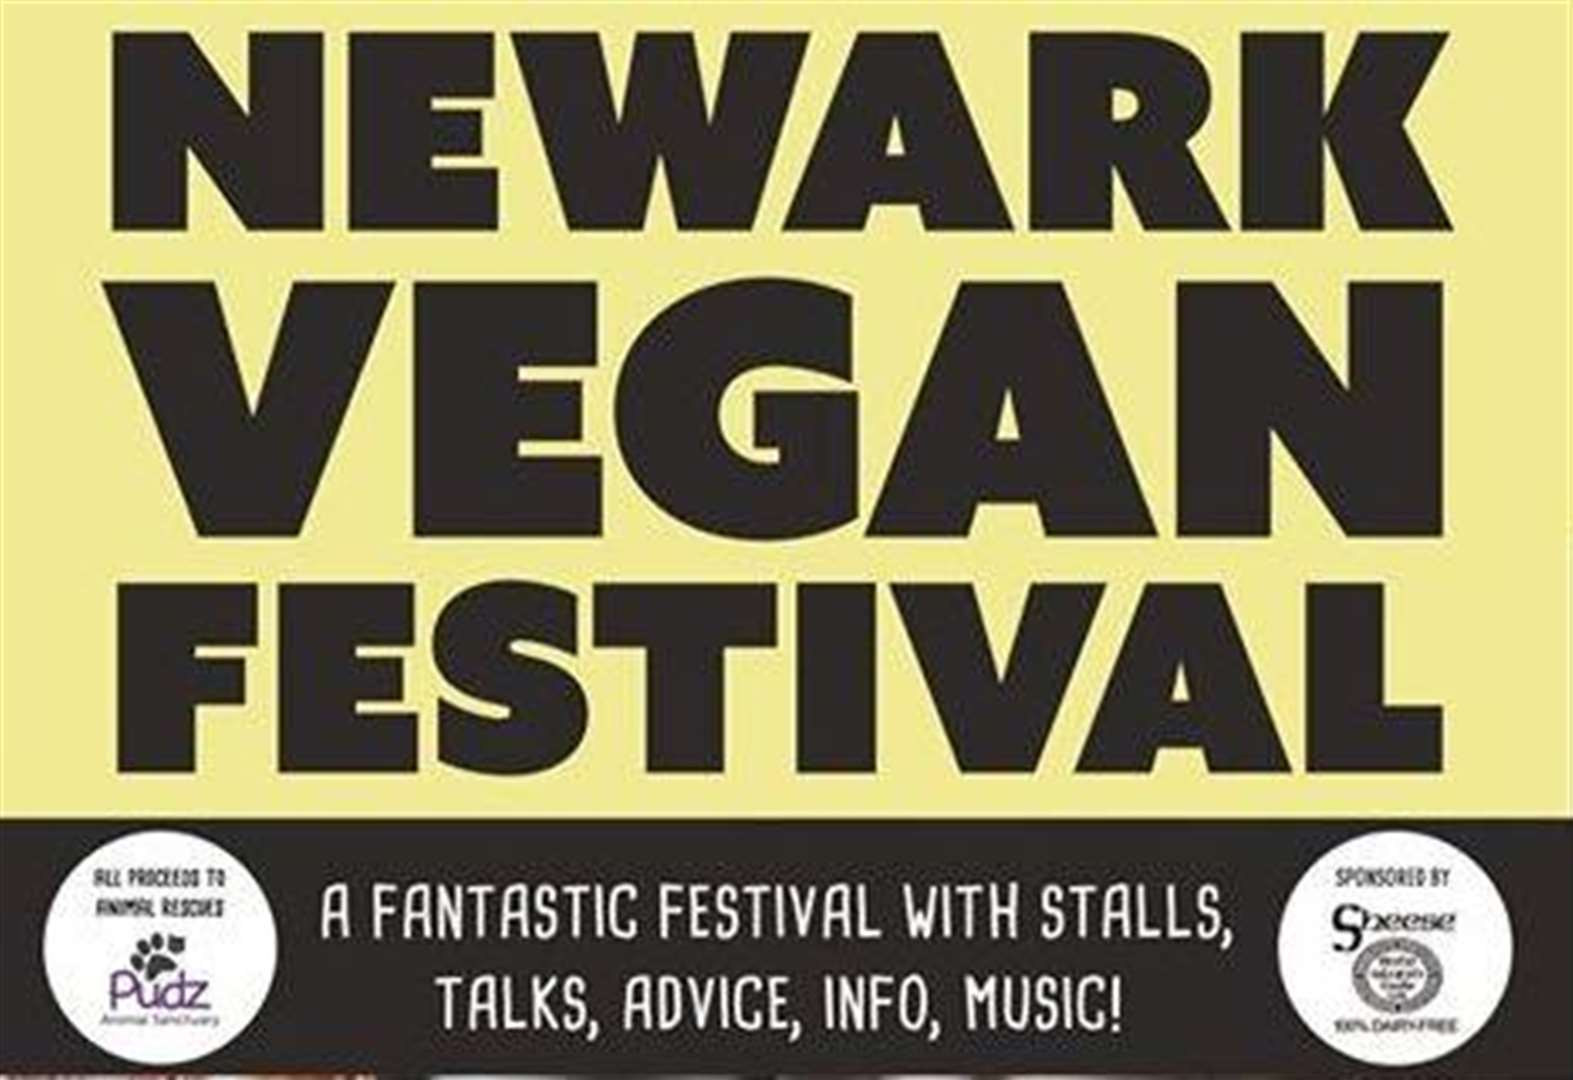 Festival to share vegan experiences